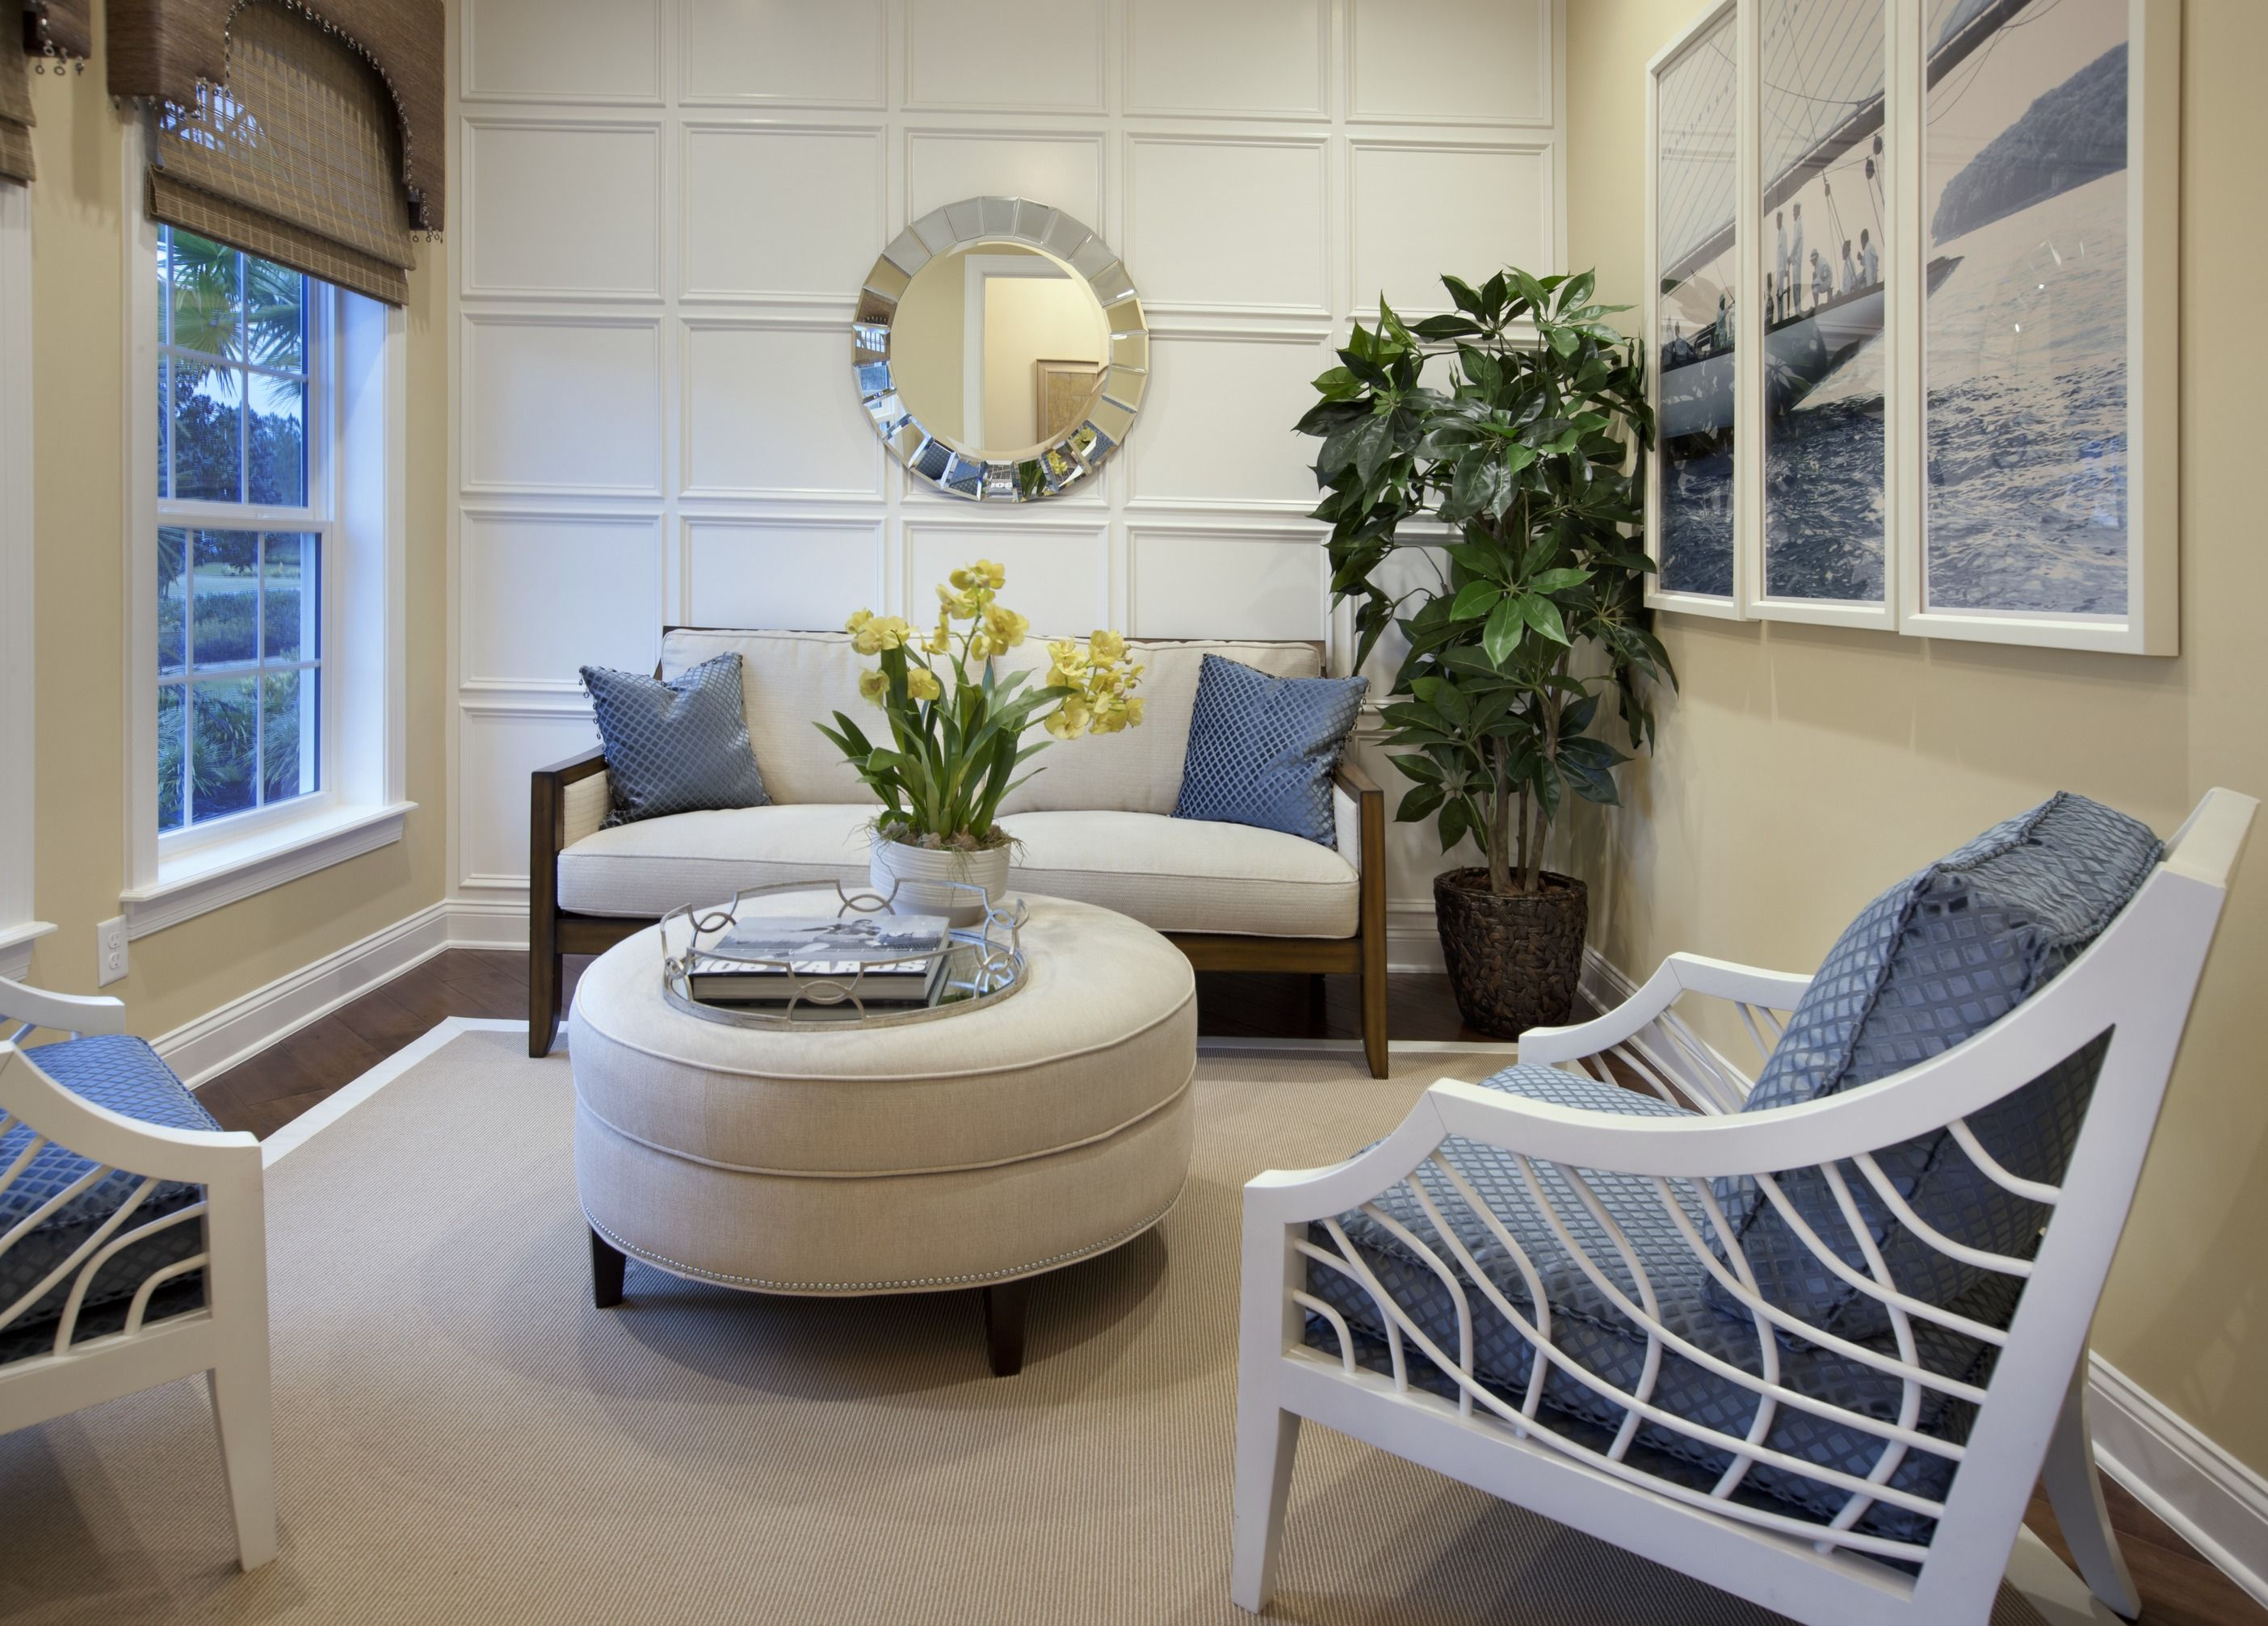 Enjoy a quiet moment in this serene sitting room from the